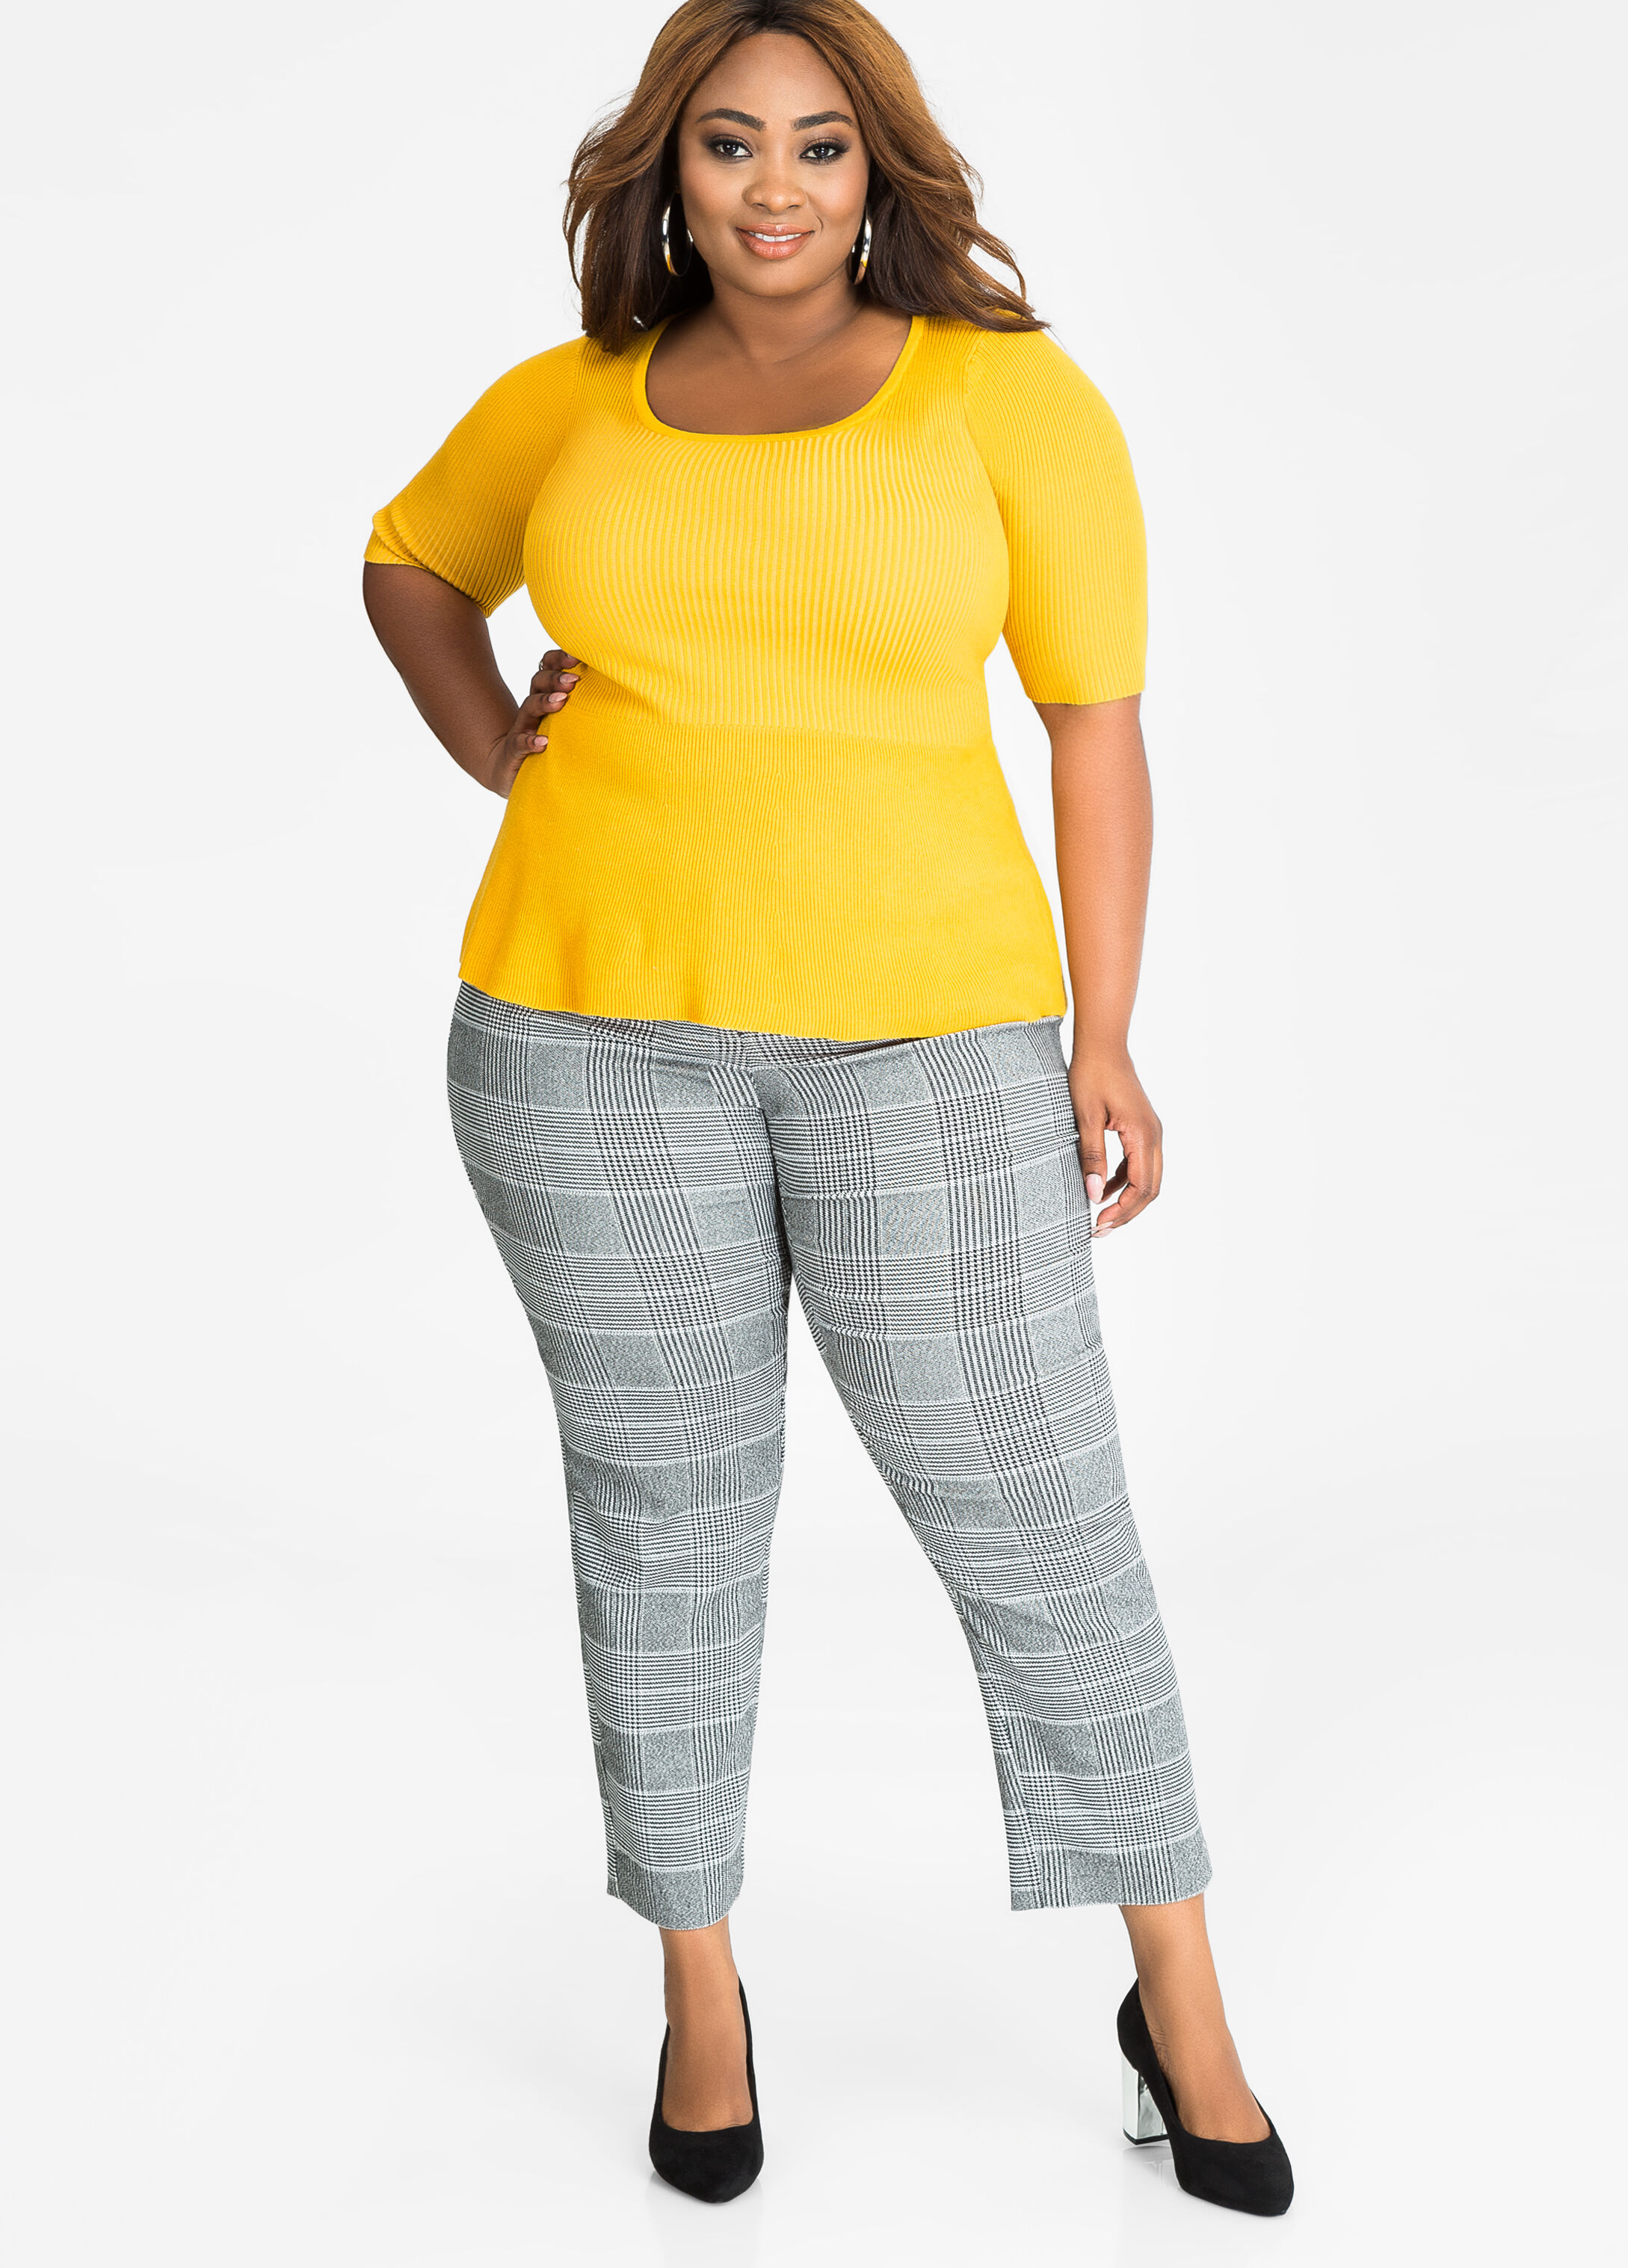 Glen Plaid Houndstooth Ankle Pant